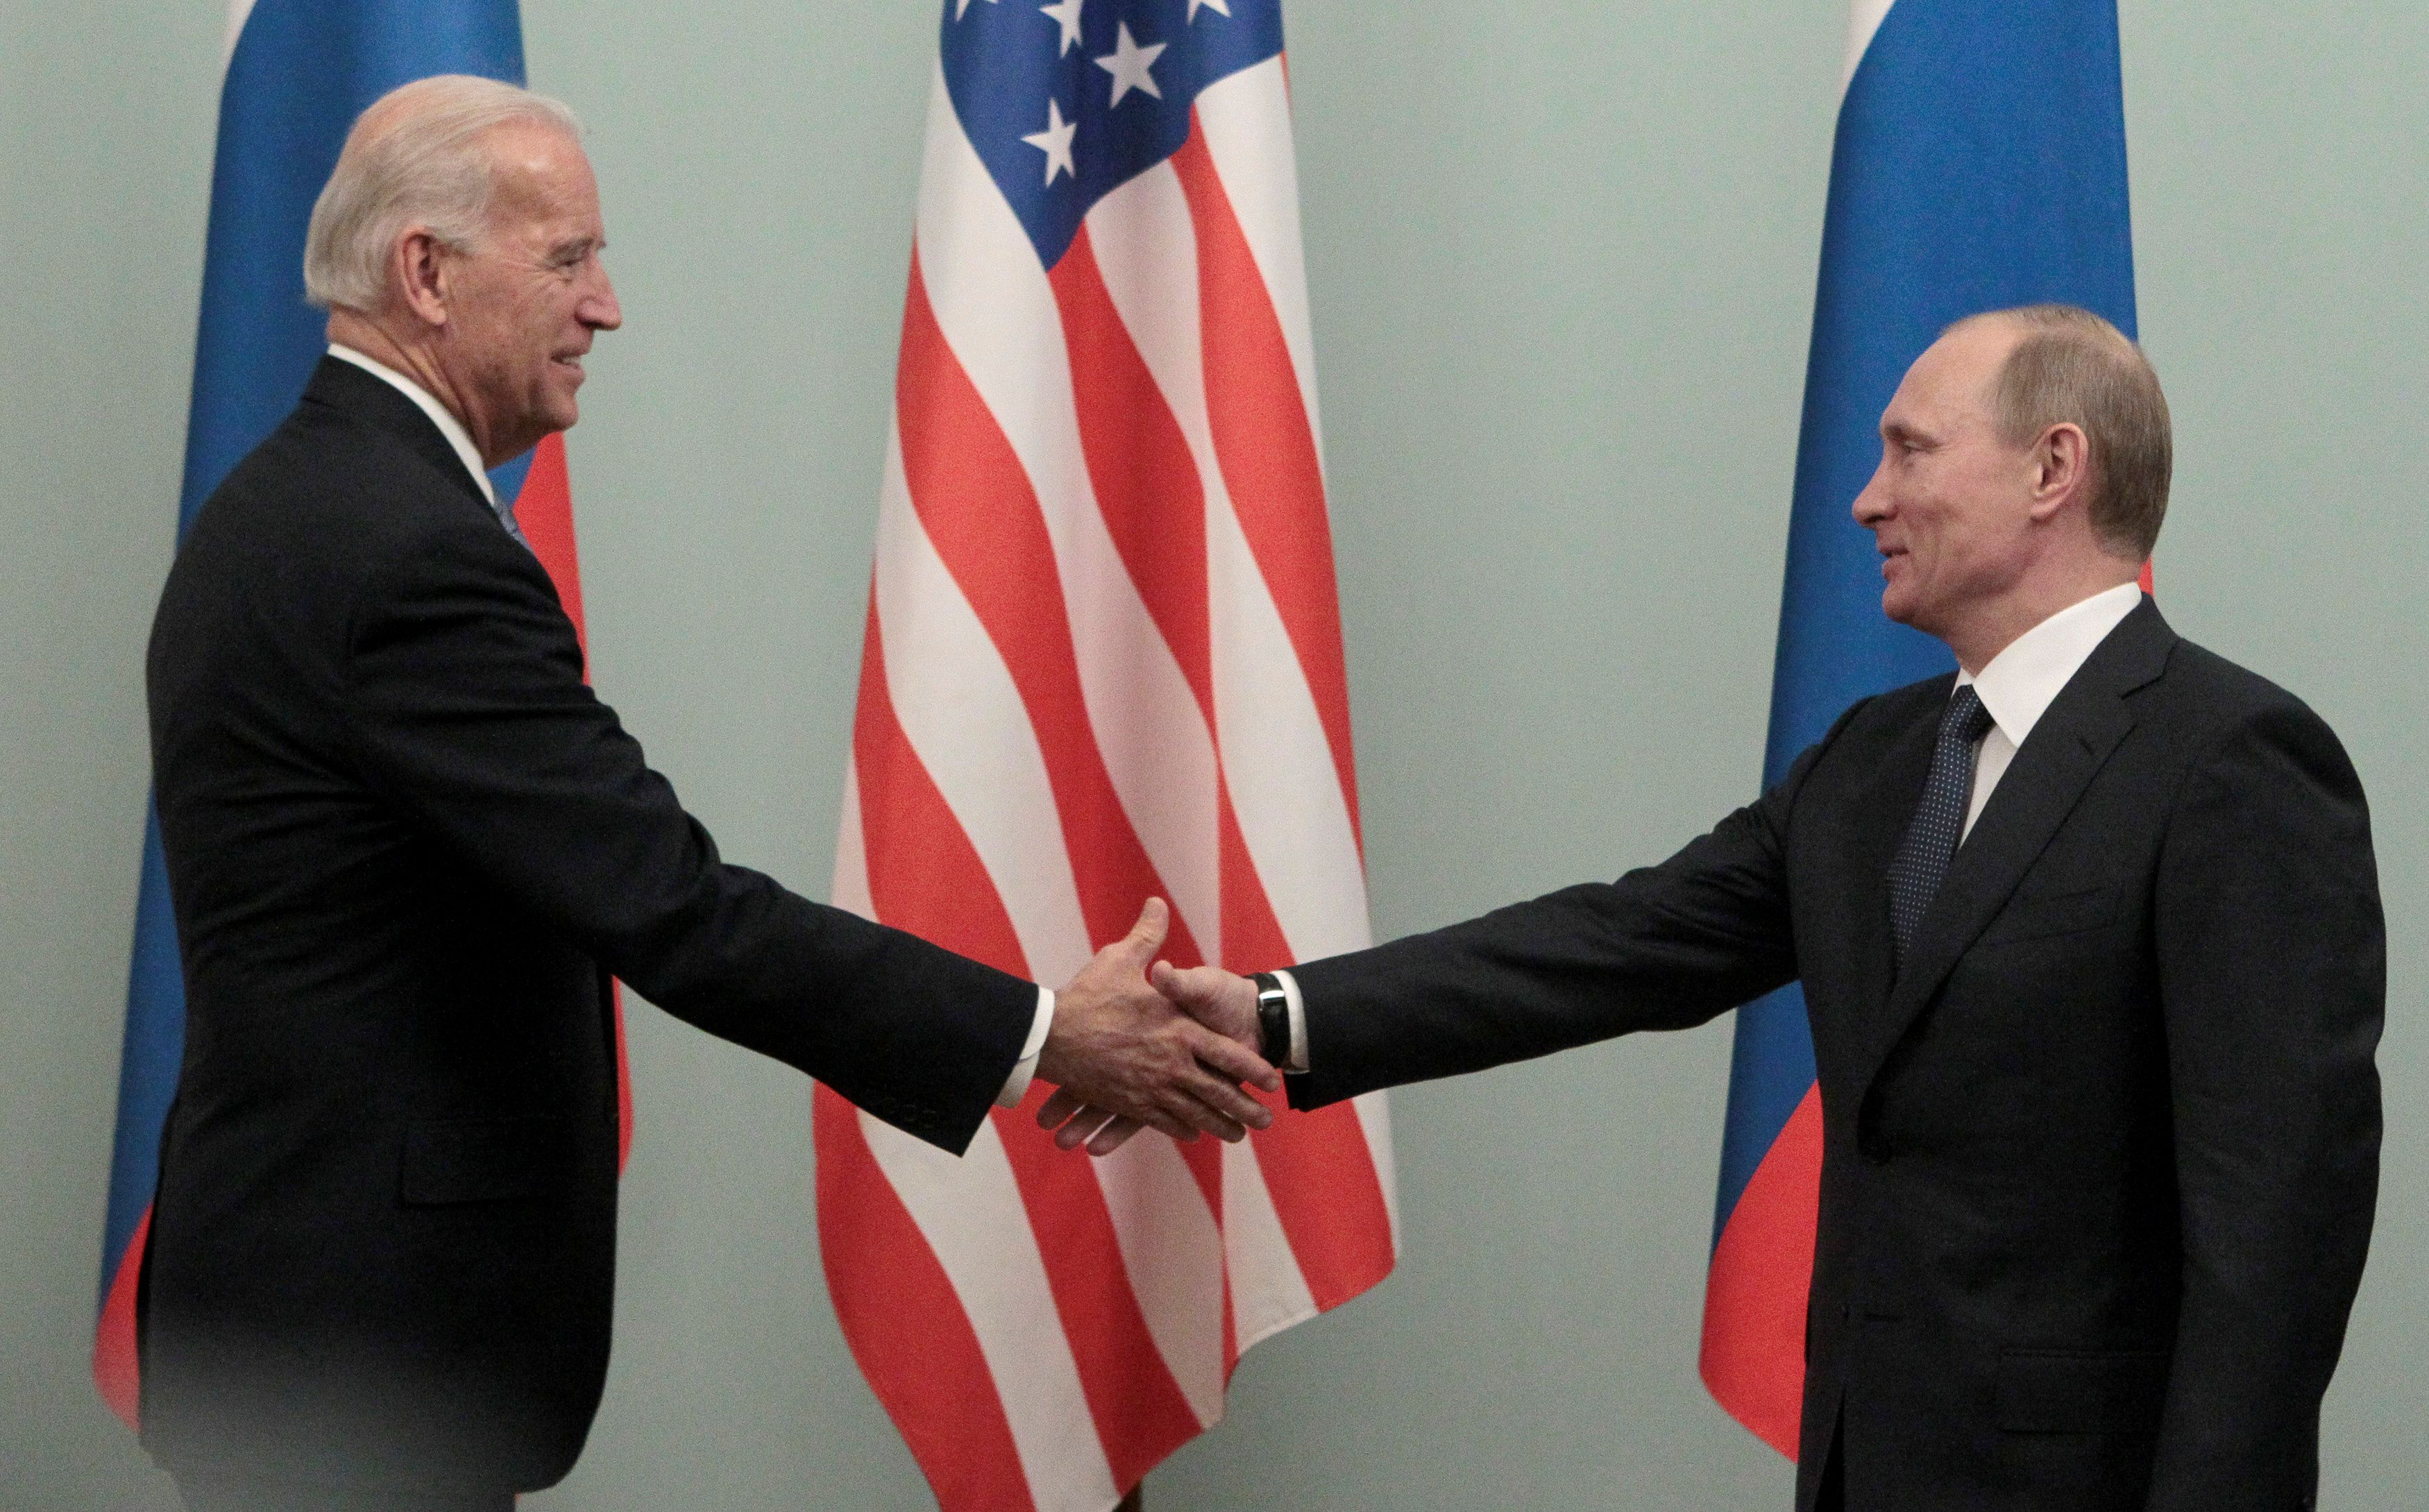 Russian Prime Minister Vladimir Putin (R) shakes hands with U.S. Vice President Joe Biden during their meeting in Moscow March 10, 2011. REUTERS/Alexander Natruskin